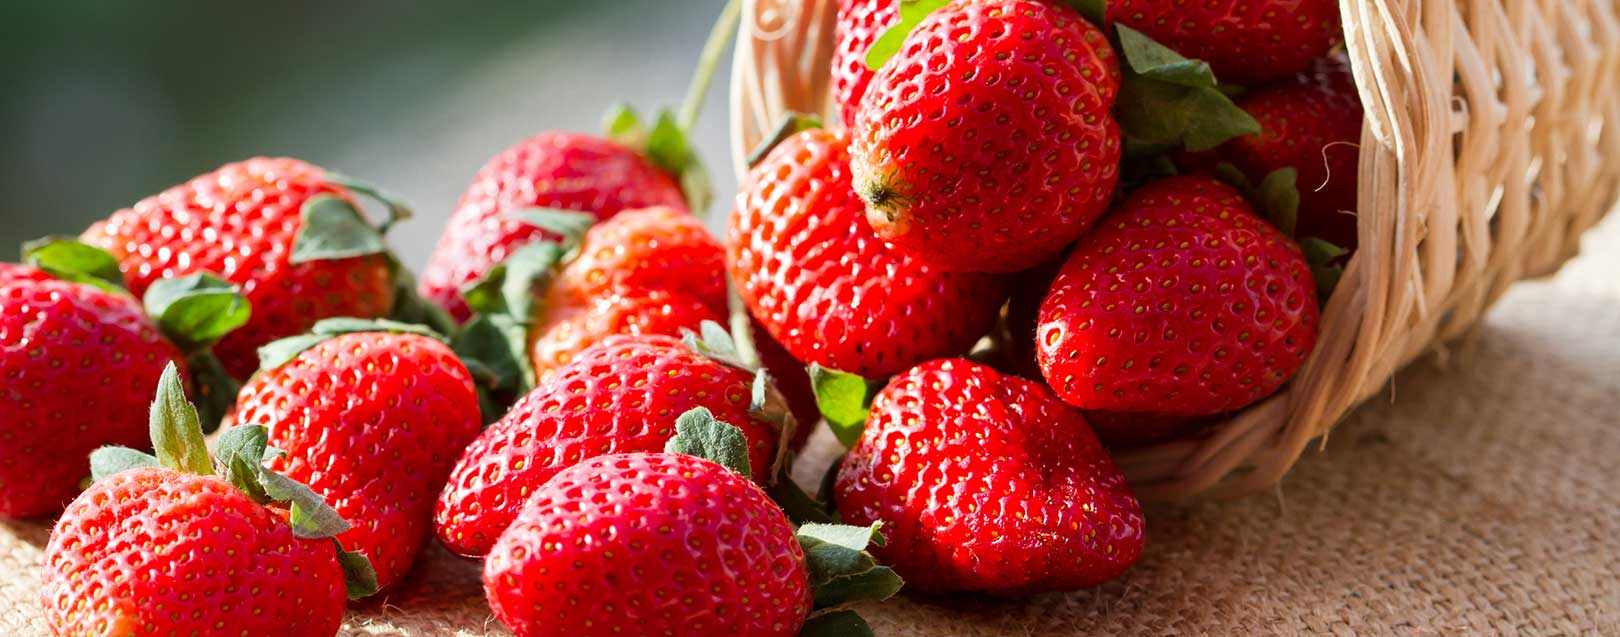 Saudi Arabia bans Egyptian strawberries due to pesticide residues